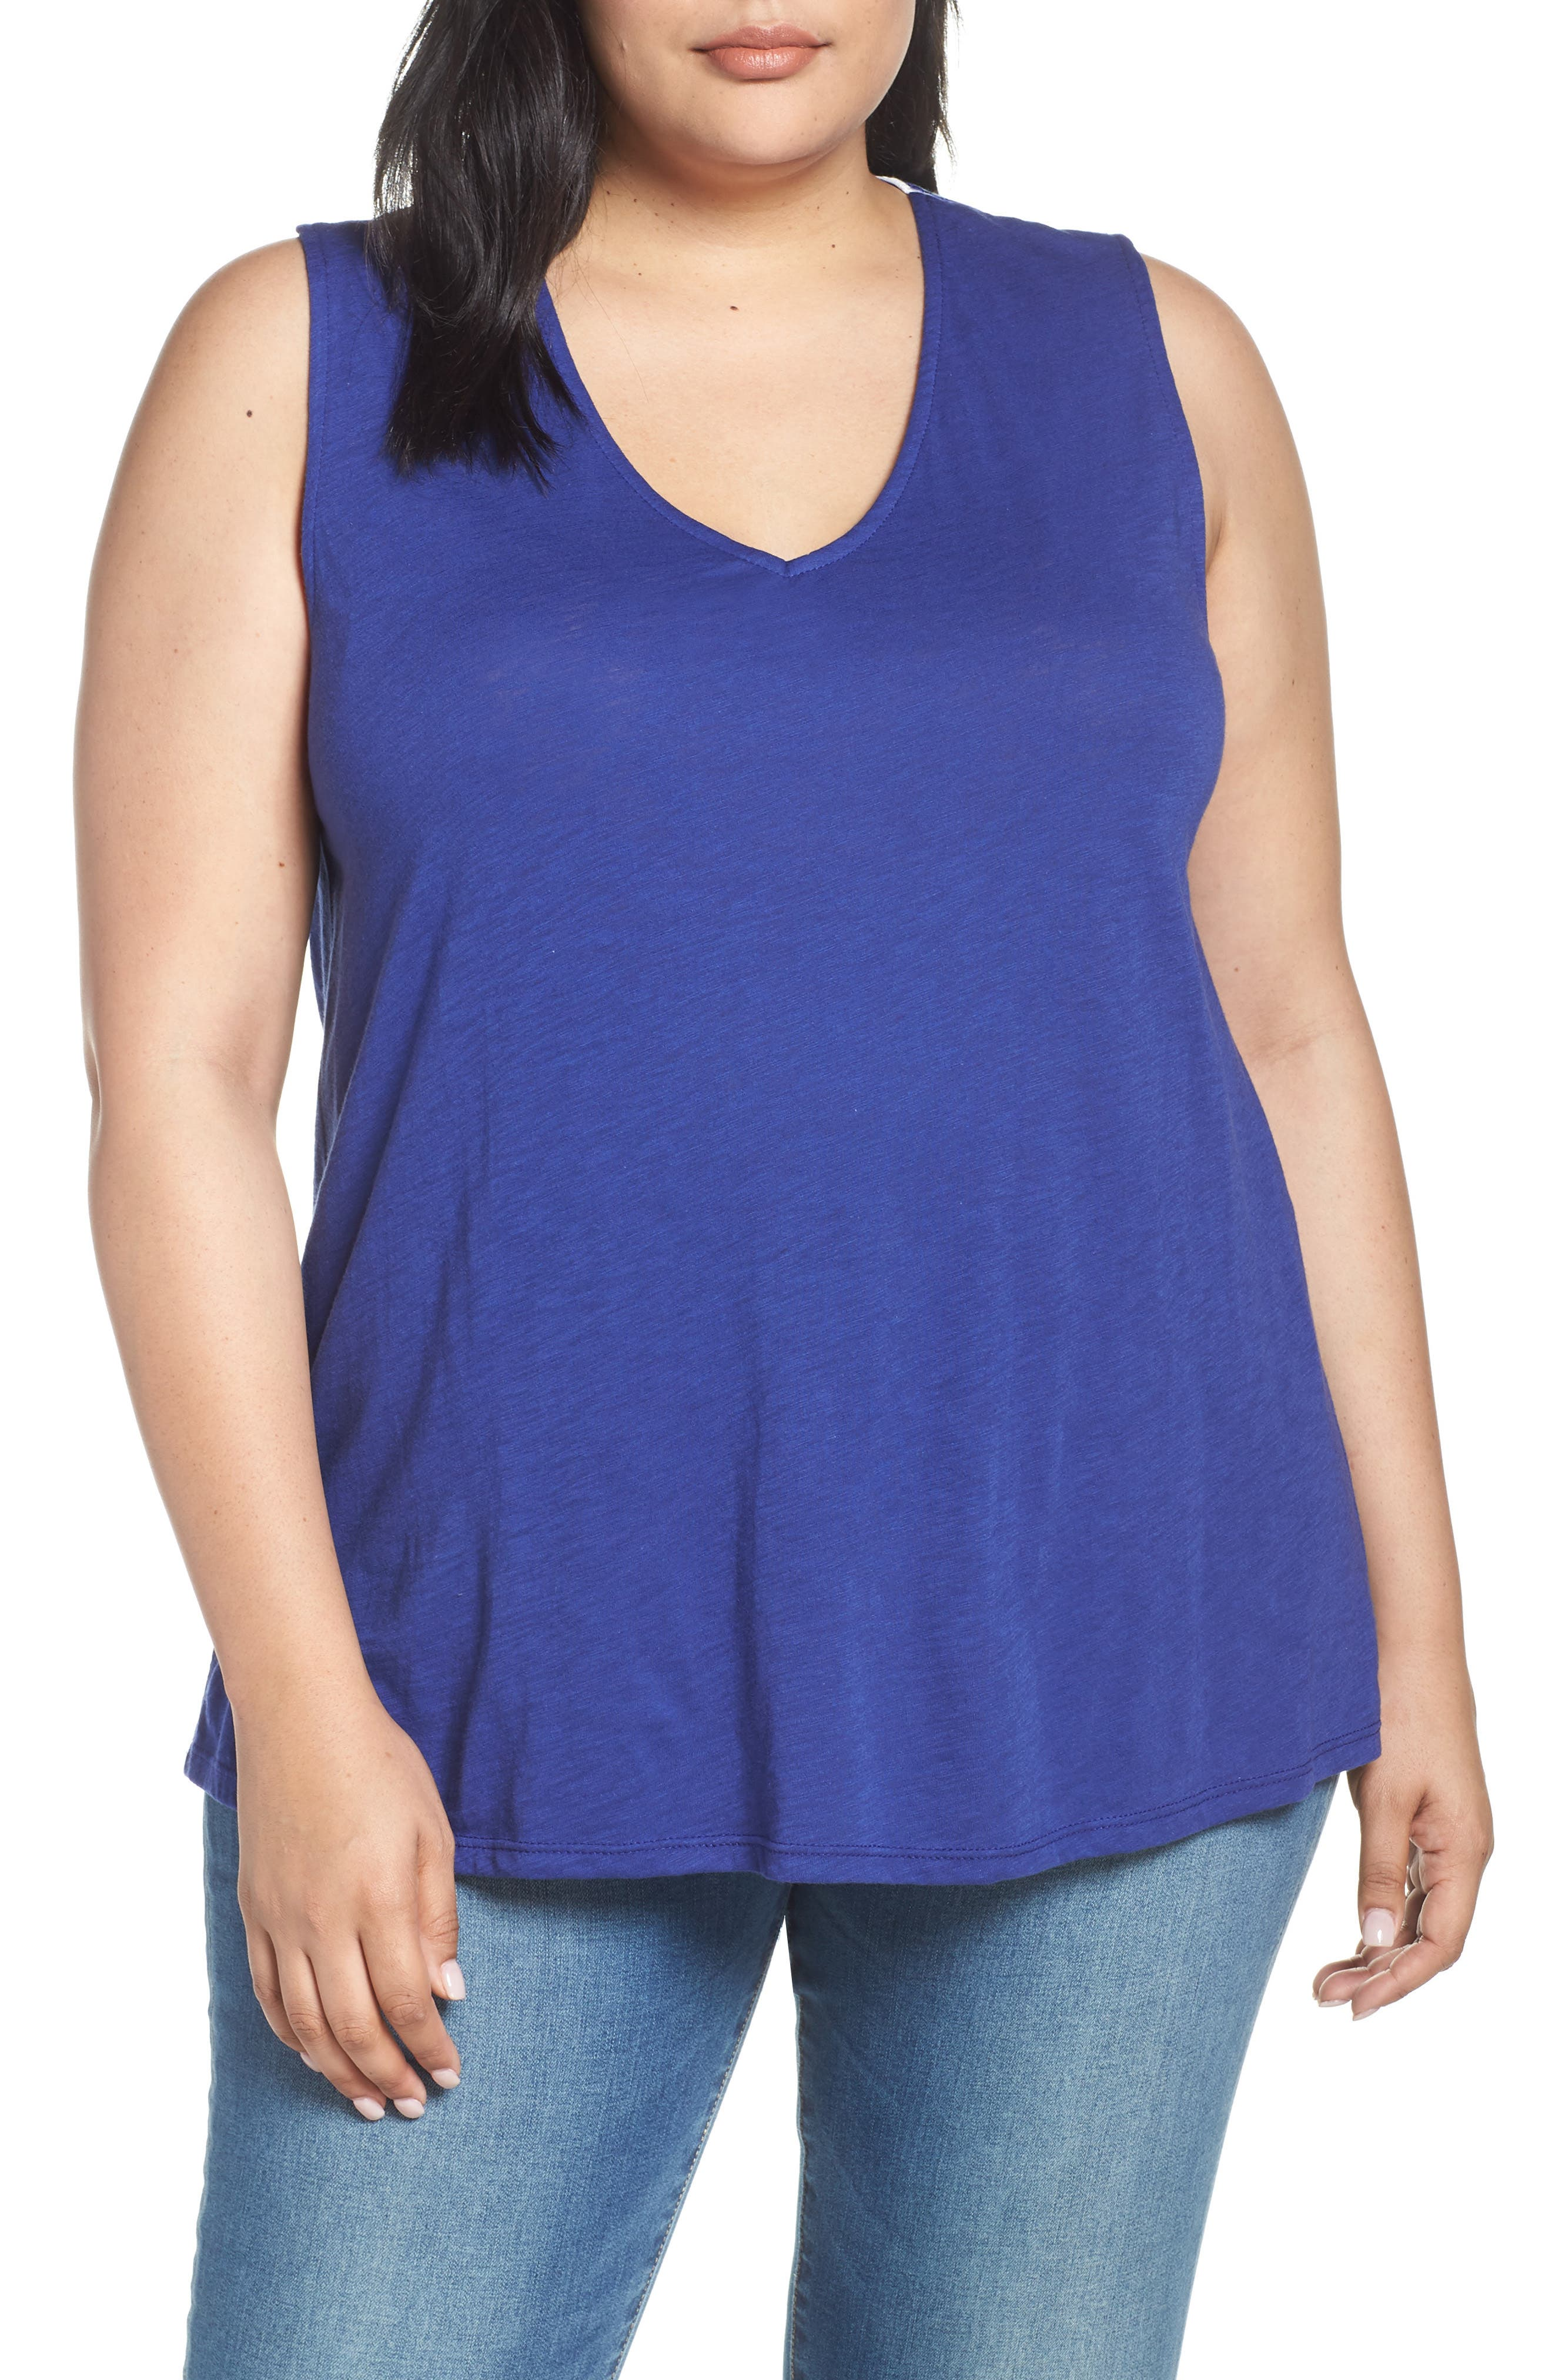 Plus Size Gibson X Hi Sugarplum! Malibu Embroidered Racerback Tank Top, Blue (Plus Size) (Nordstrom Exclusive)